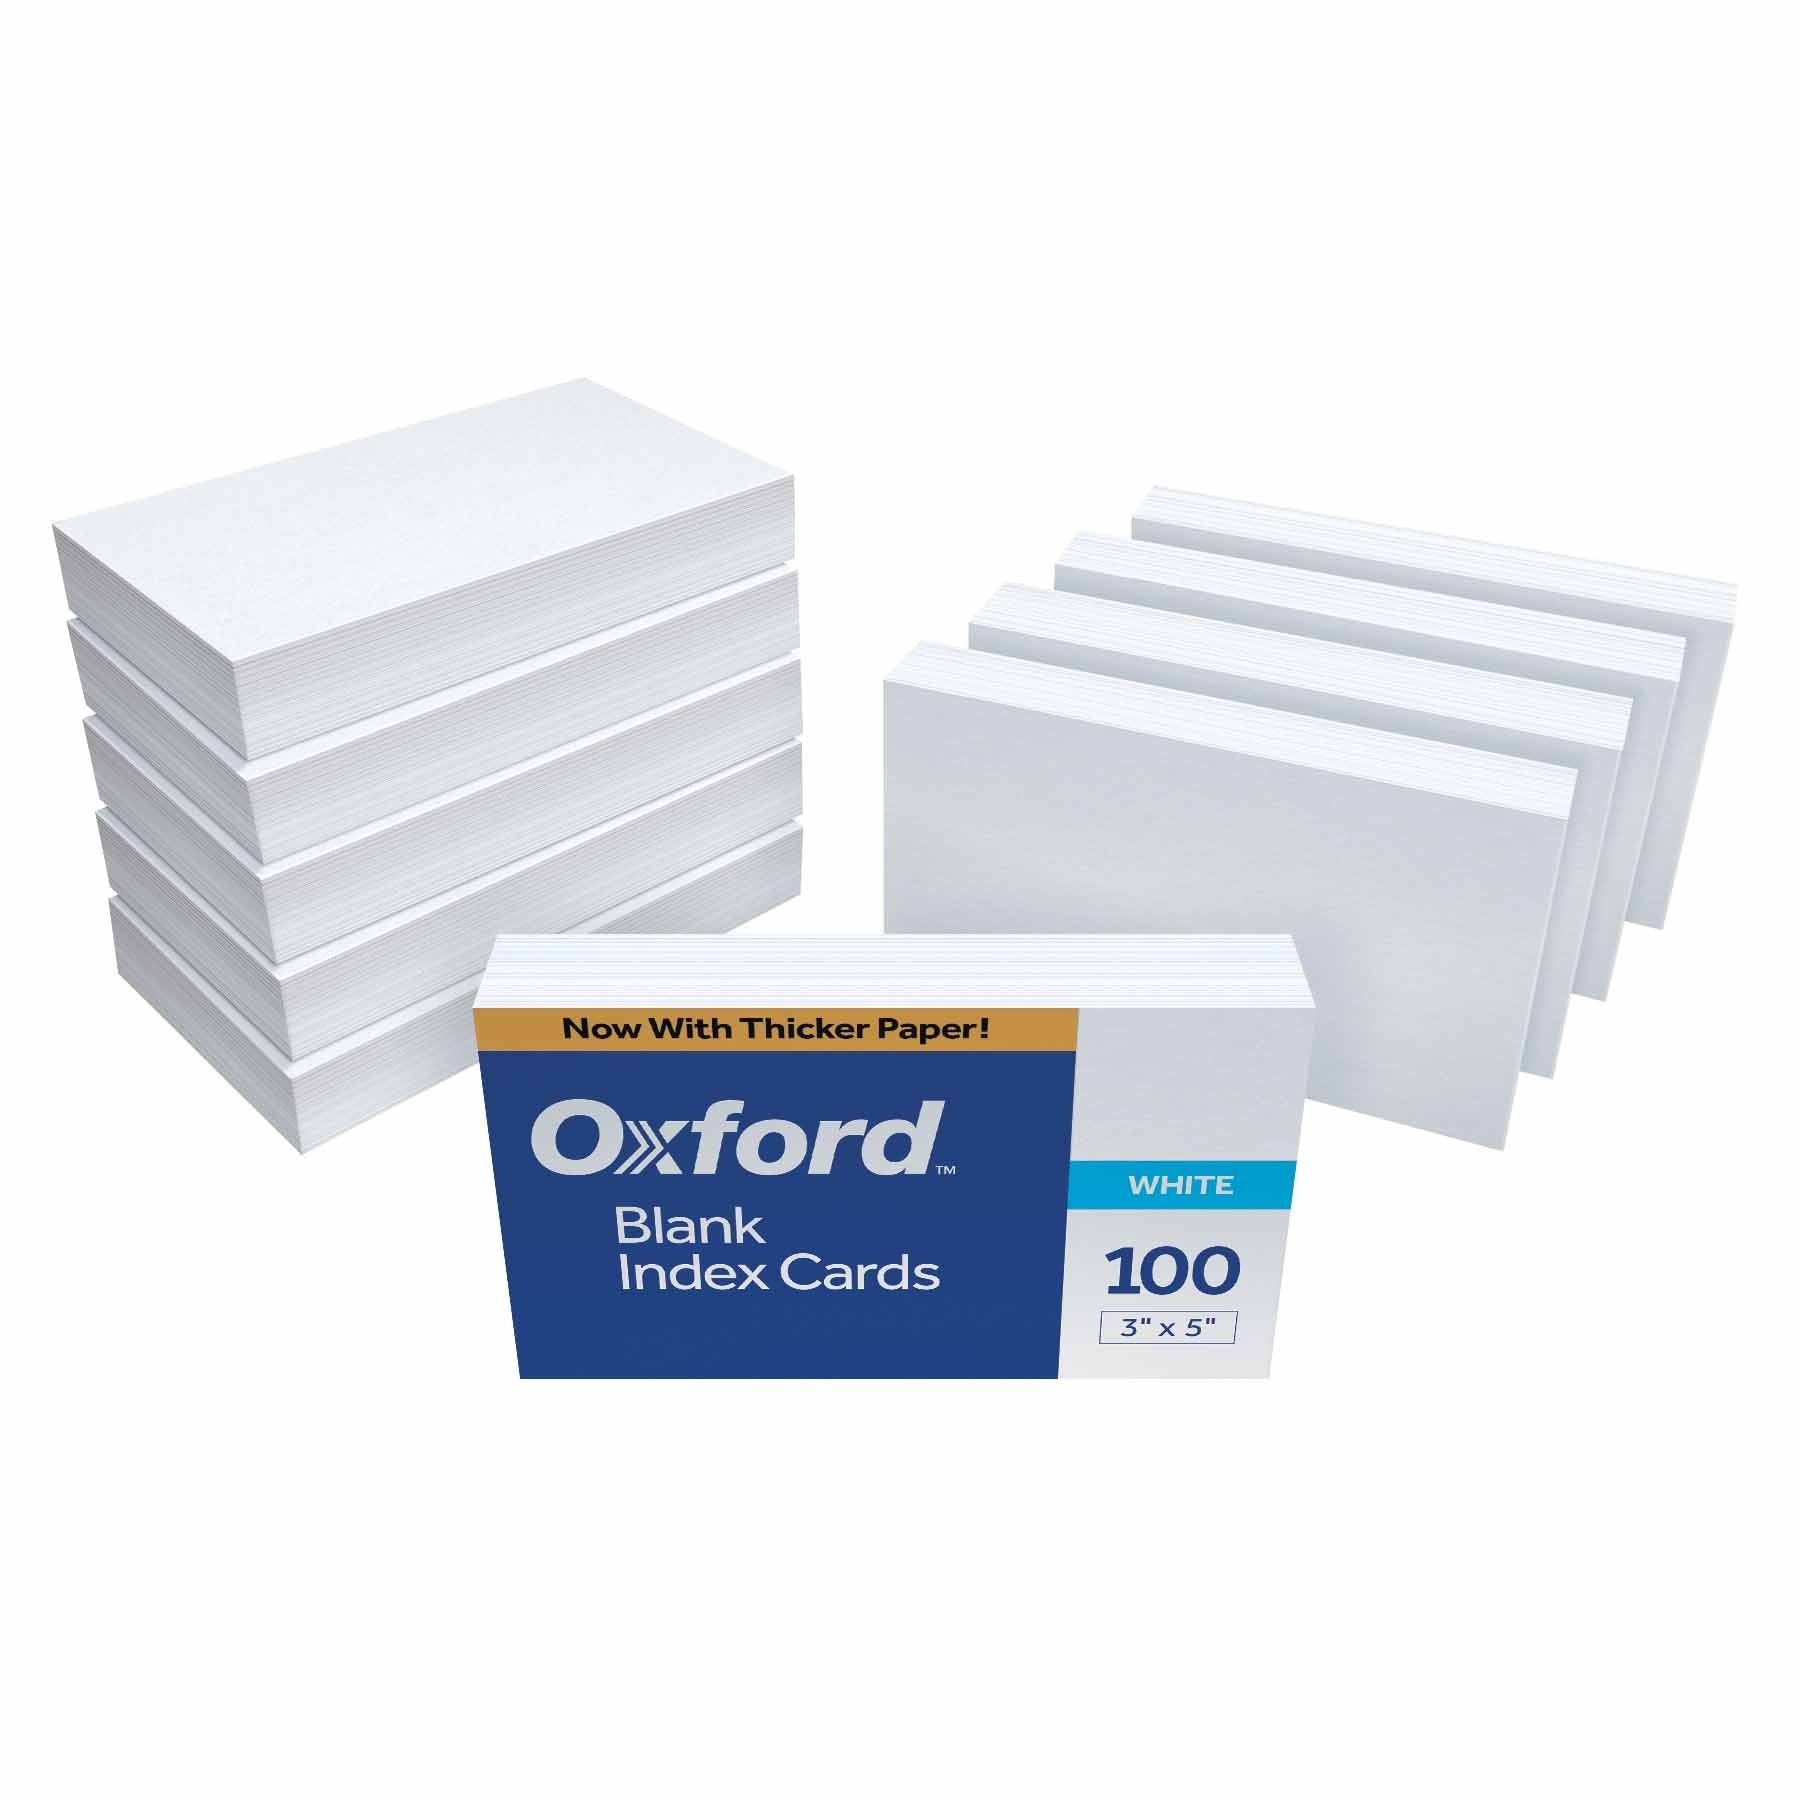 Oxford Blank Index Cards 3 X 5 White 1 000 Cards 10